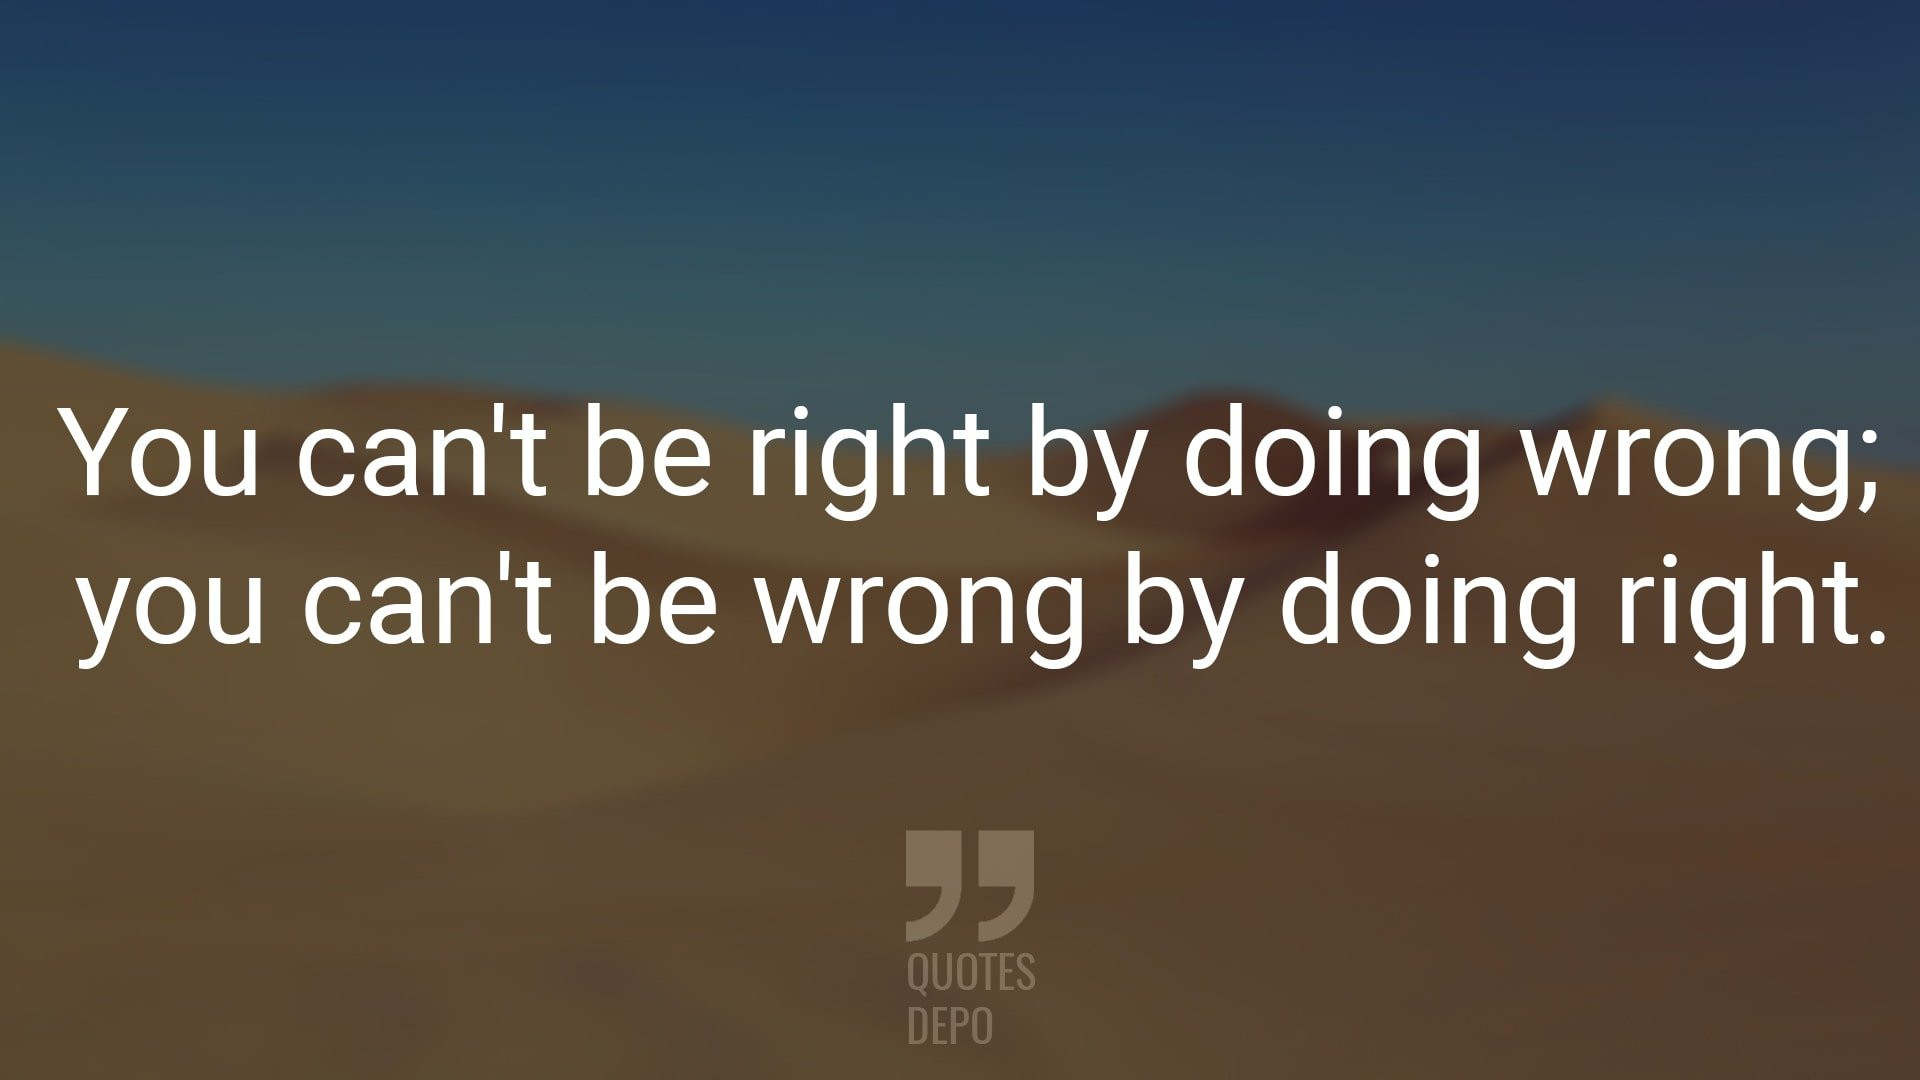 you can't be right by doing wrong